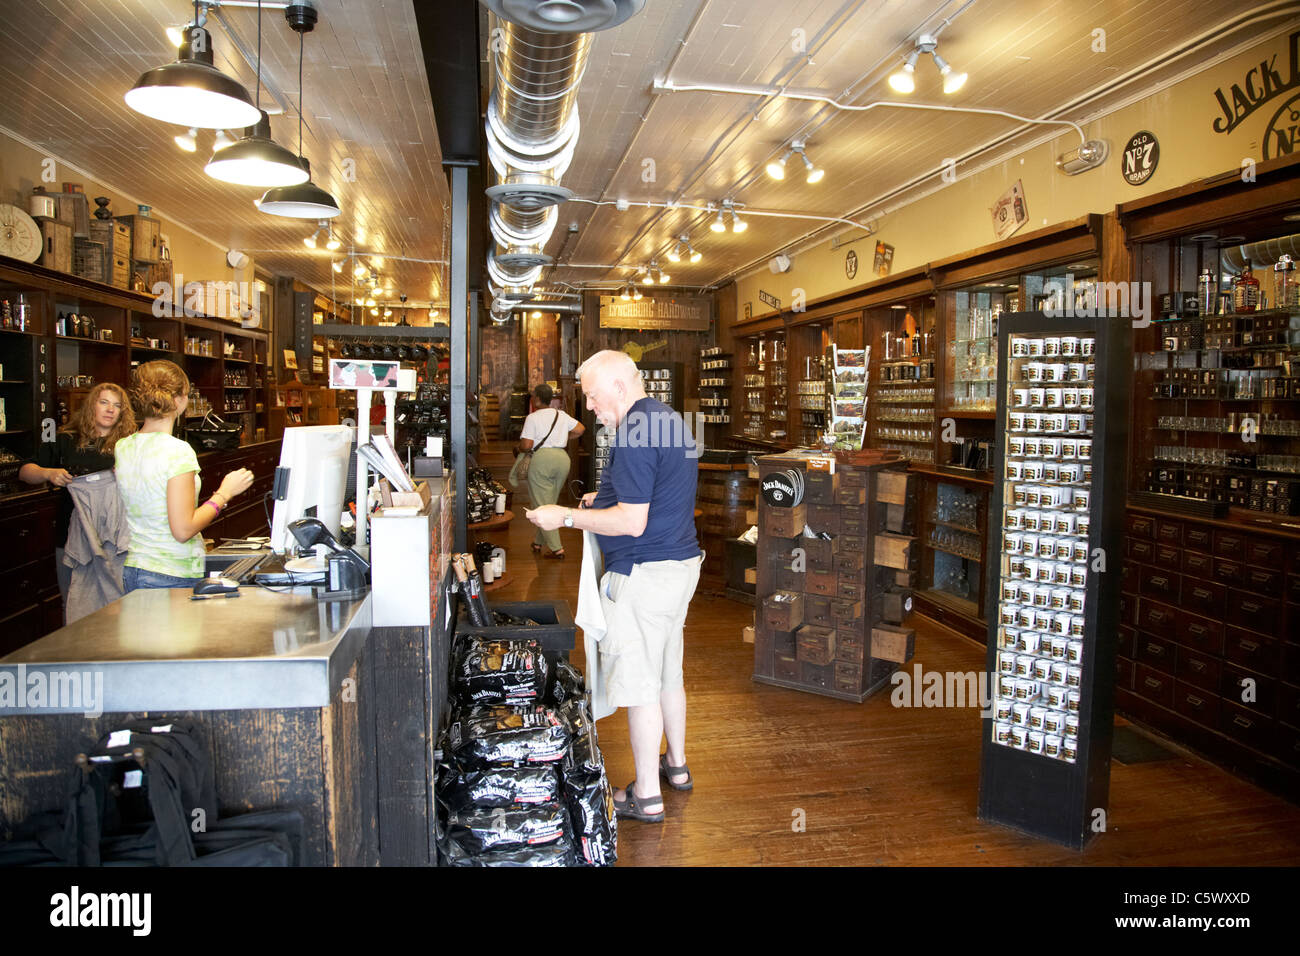 interior of jack daniels hardware store souvenir and gift shop stock photo 38063941 alamy. Black Bedroom Furniture Sets. Home Design Ideas